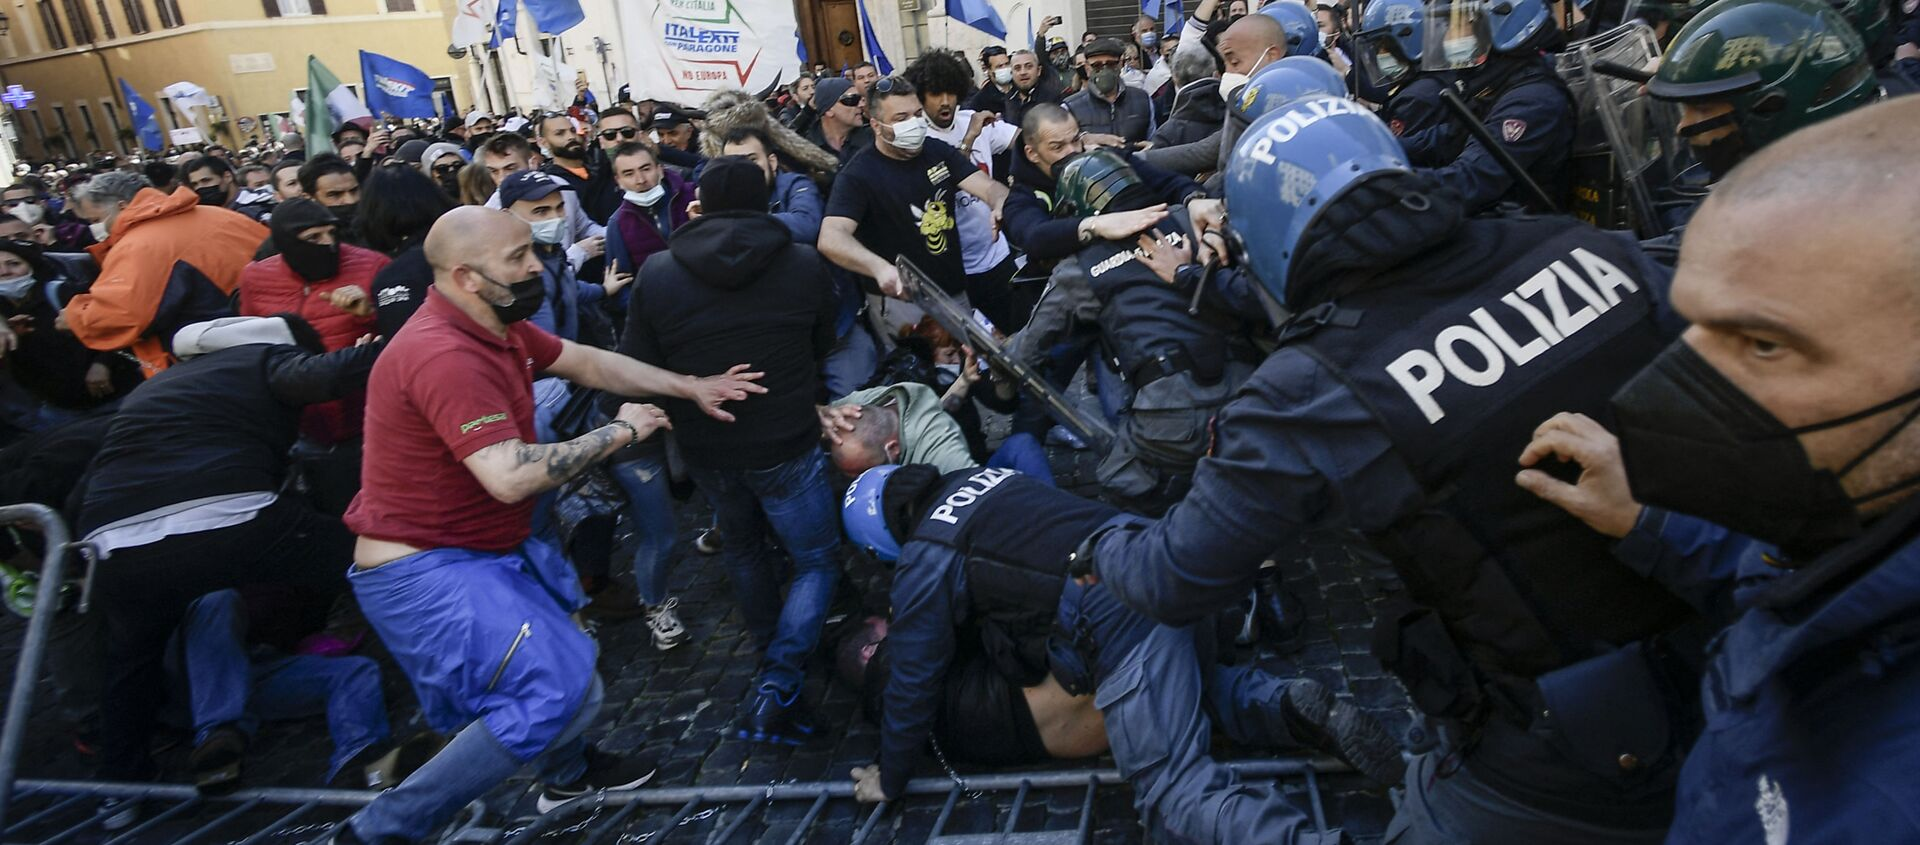 Protesters (L) skirmish with anti-riot policemen as they take part in a demonstration of restaurant owners, entrepreneurs and small businesses owners on April 6, 2021 outside parliament on Piazza Montecitorio in Rome, to protest against closures and against Italy's Health minister, during the Covid-19 coronavirus pandemic. - Sputnik International, 1920, 25.07.2021